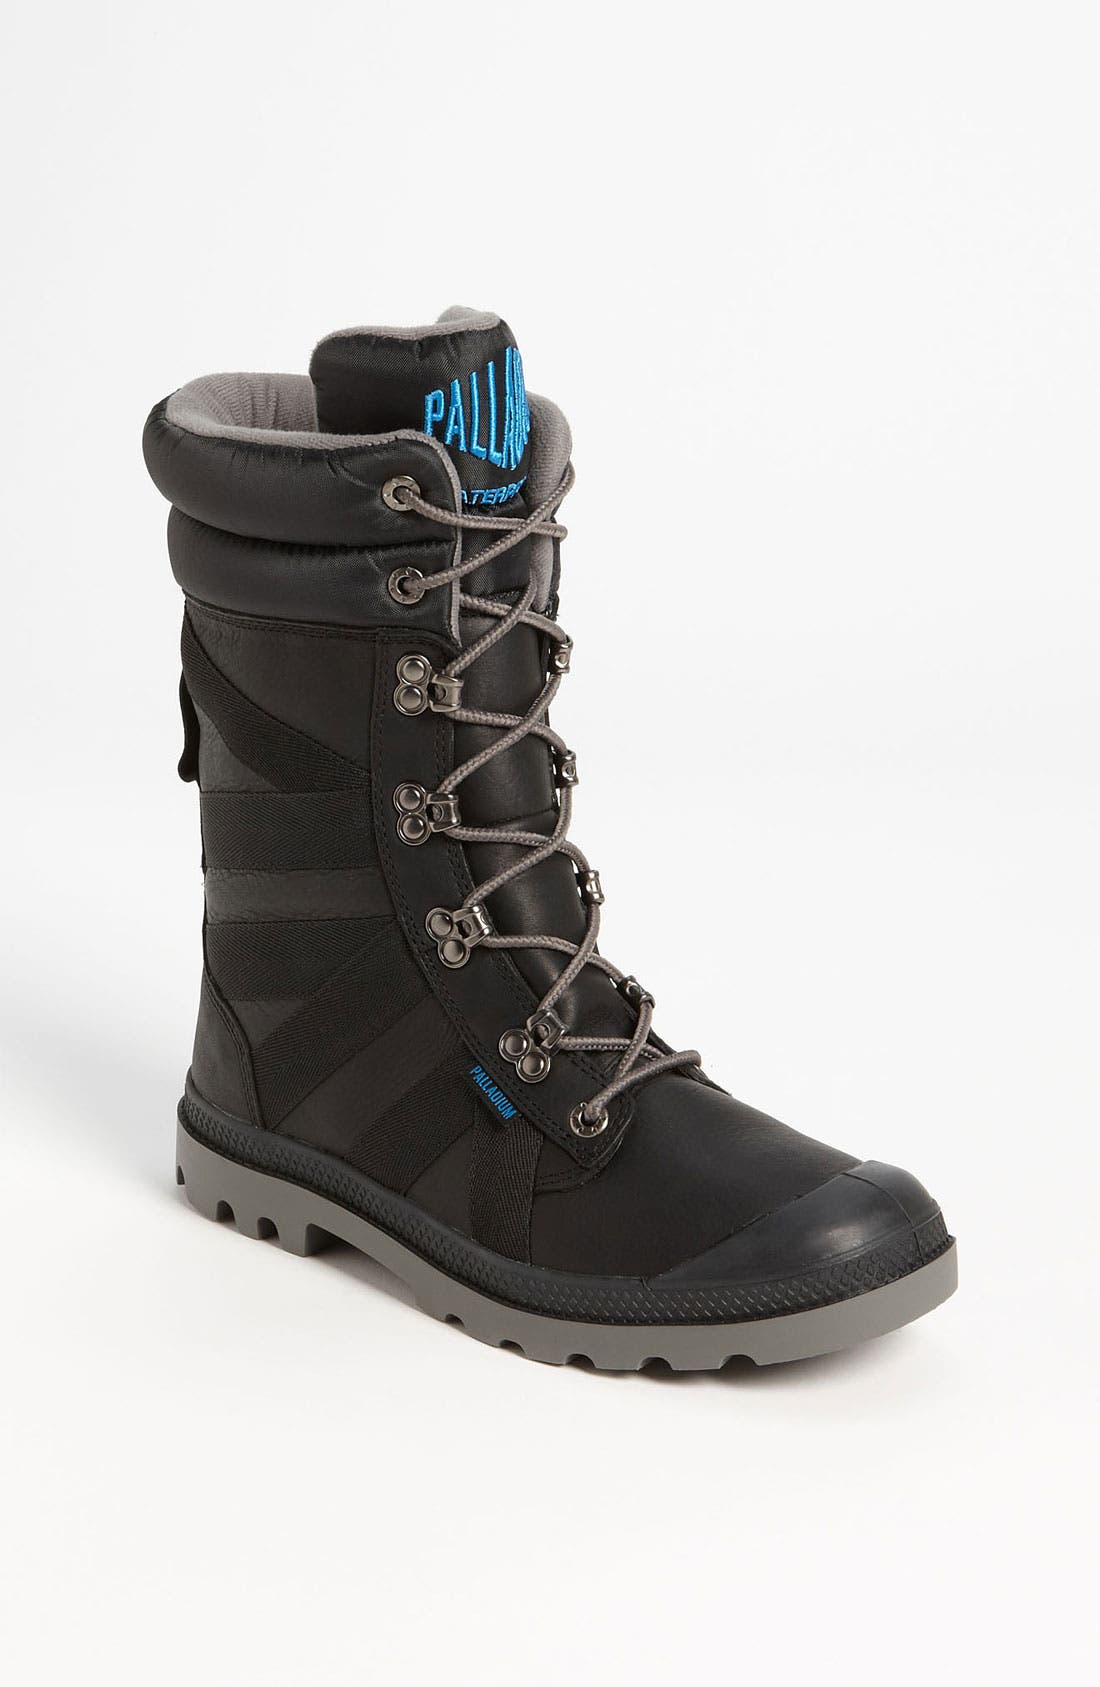 Alternate Image 1 Selected - Palladium 'Pampa' Snow Boot